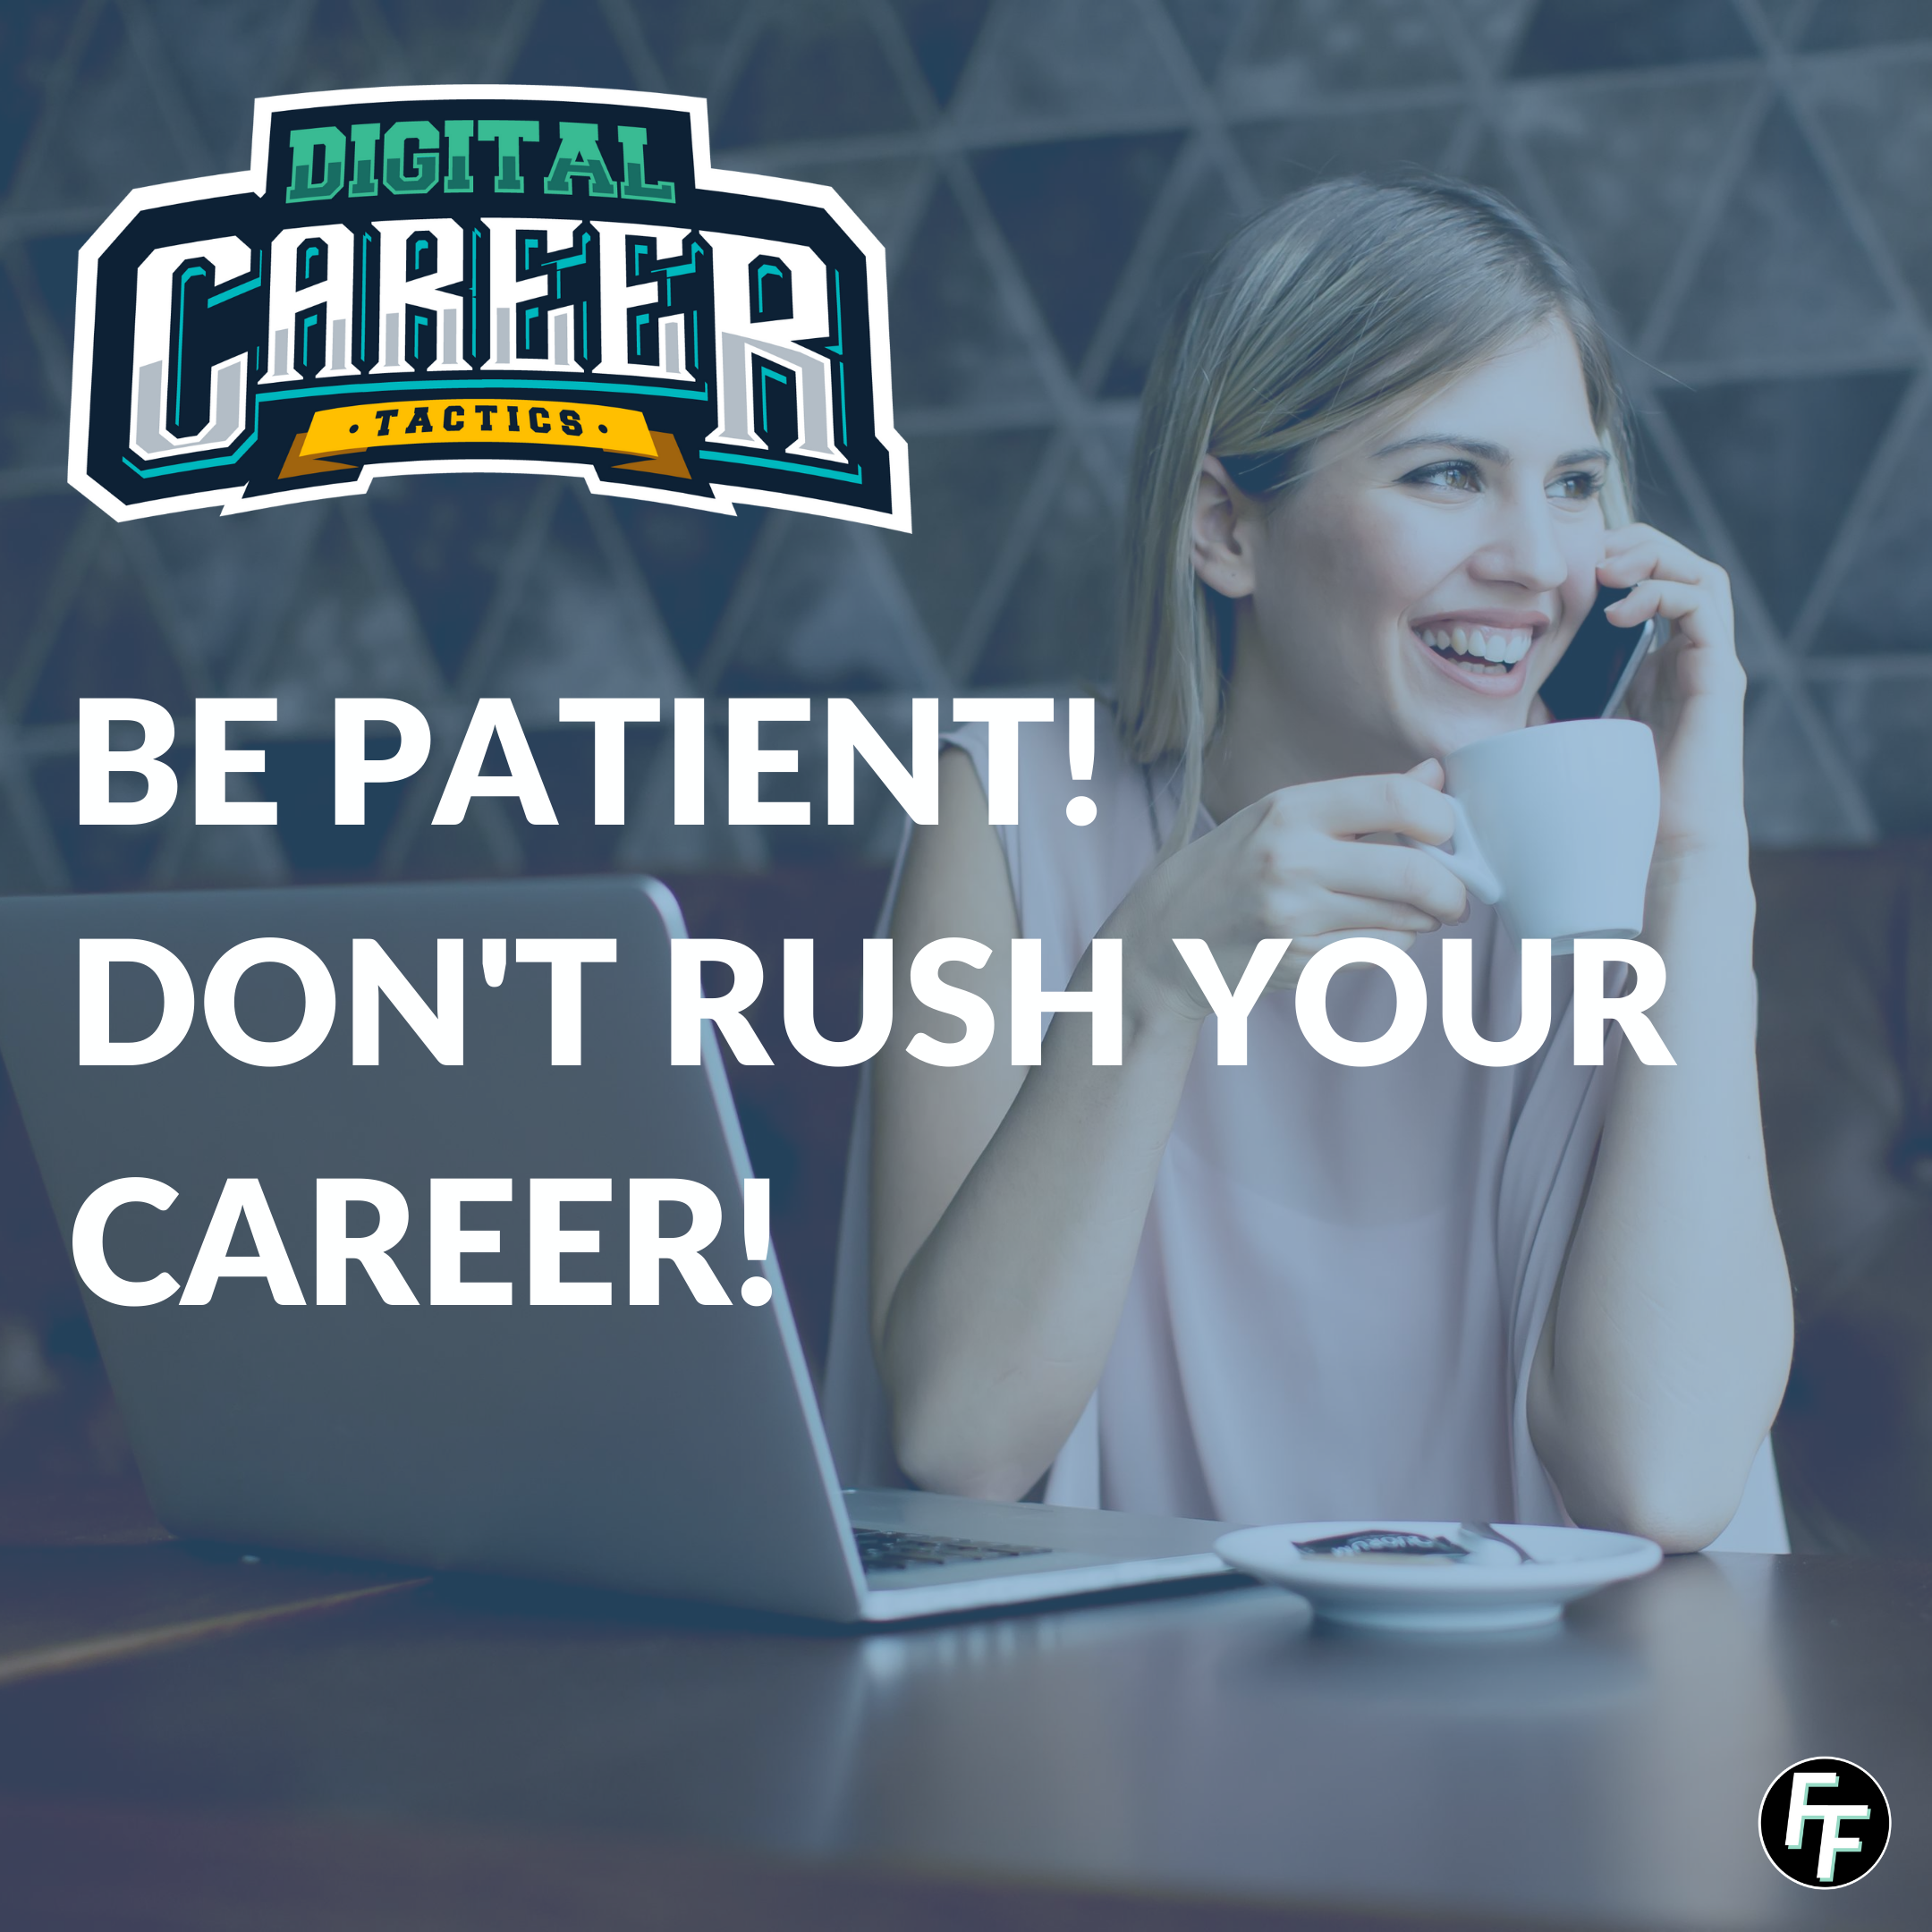 Be Patient! Don't rush your career!